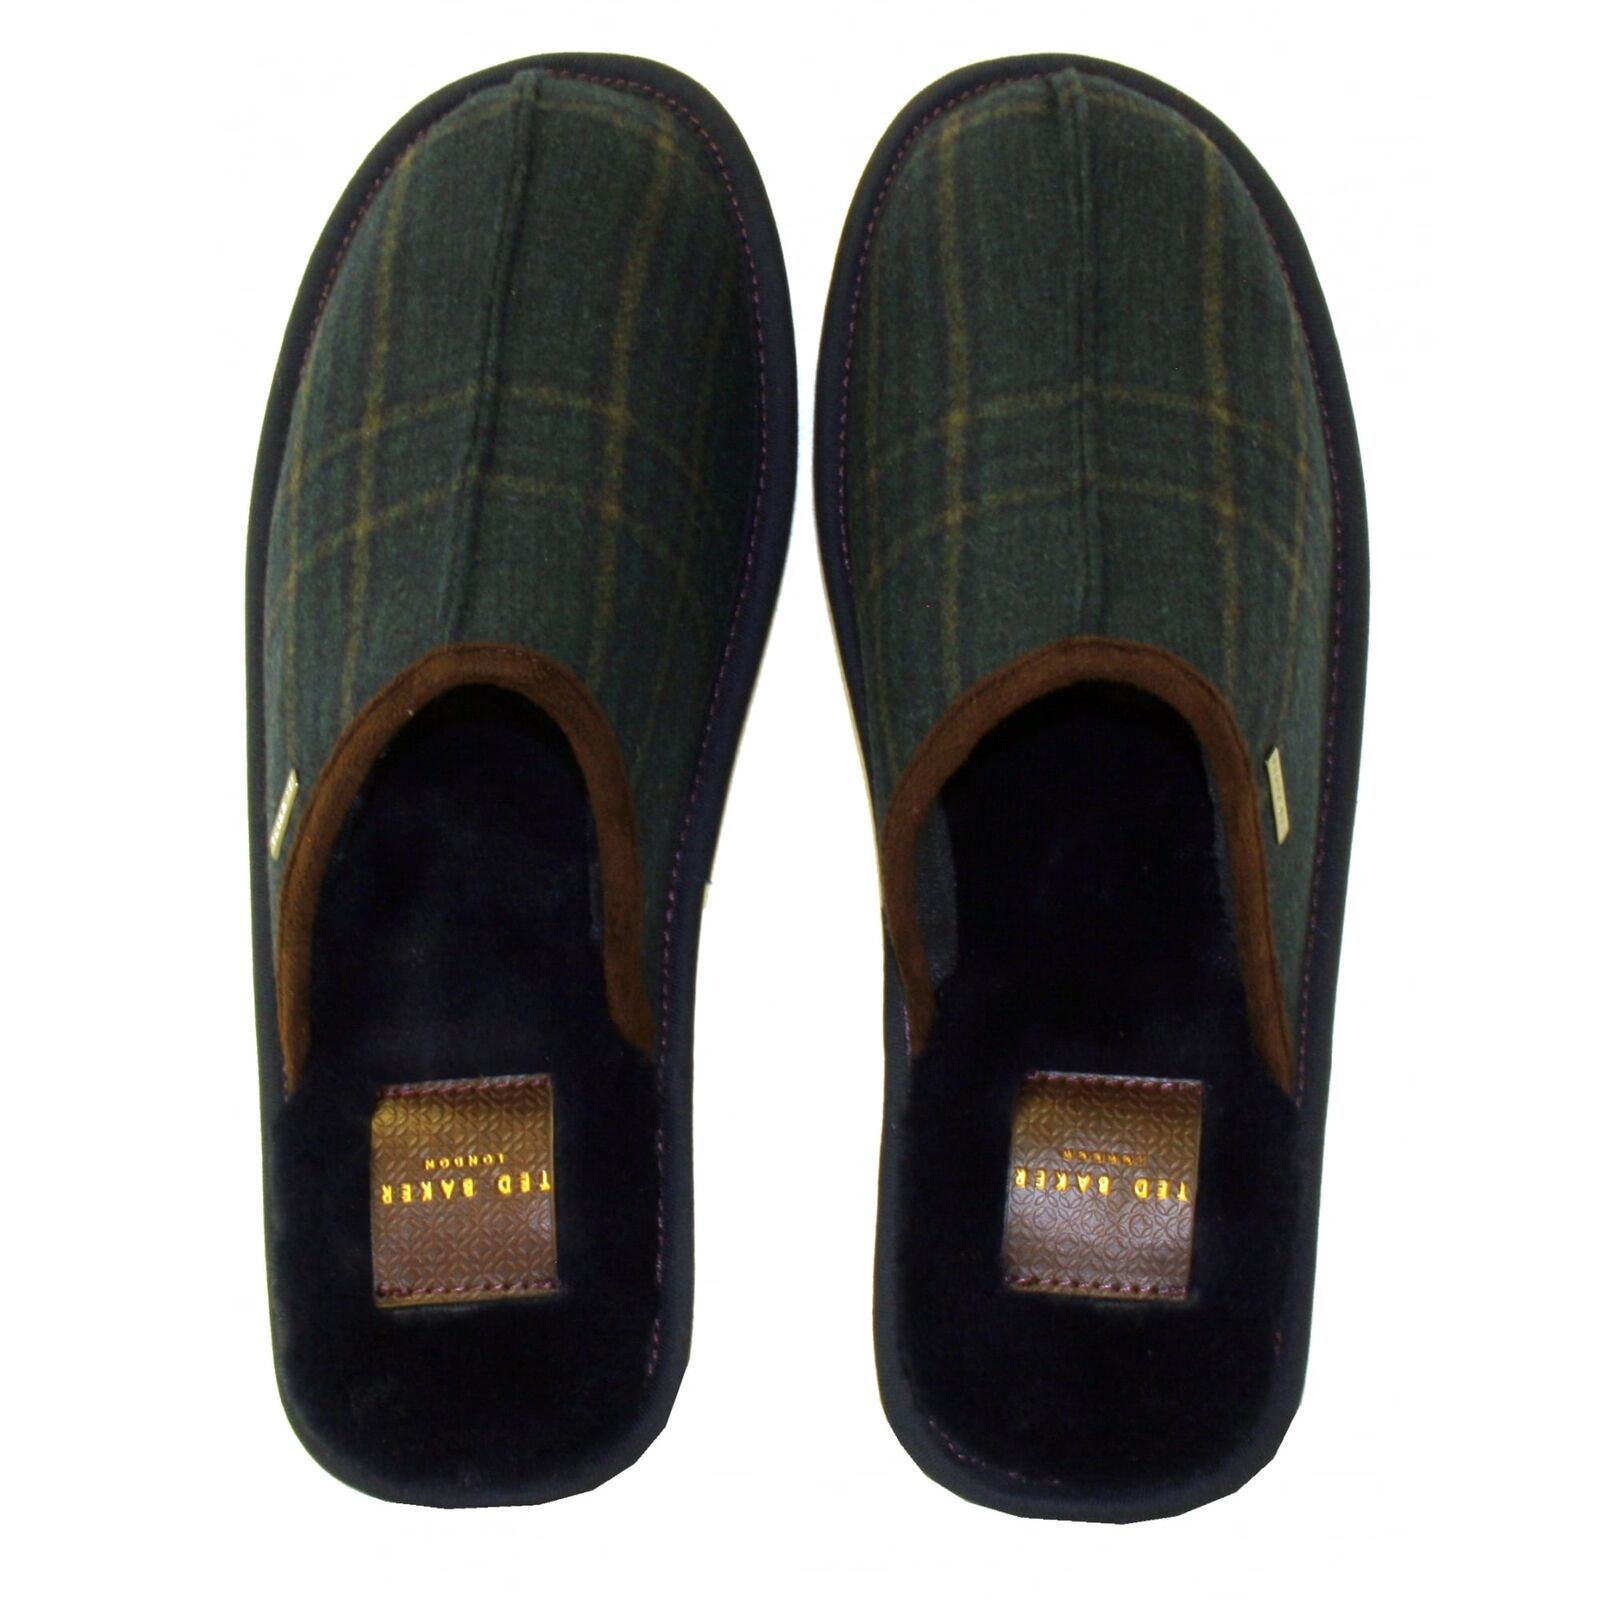 Ted Baker Men's Youngi 2 Suede Slip-on Slippers, Dark bluee Green Check